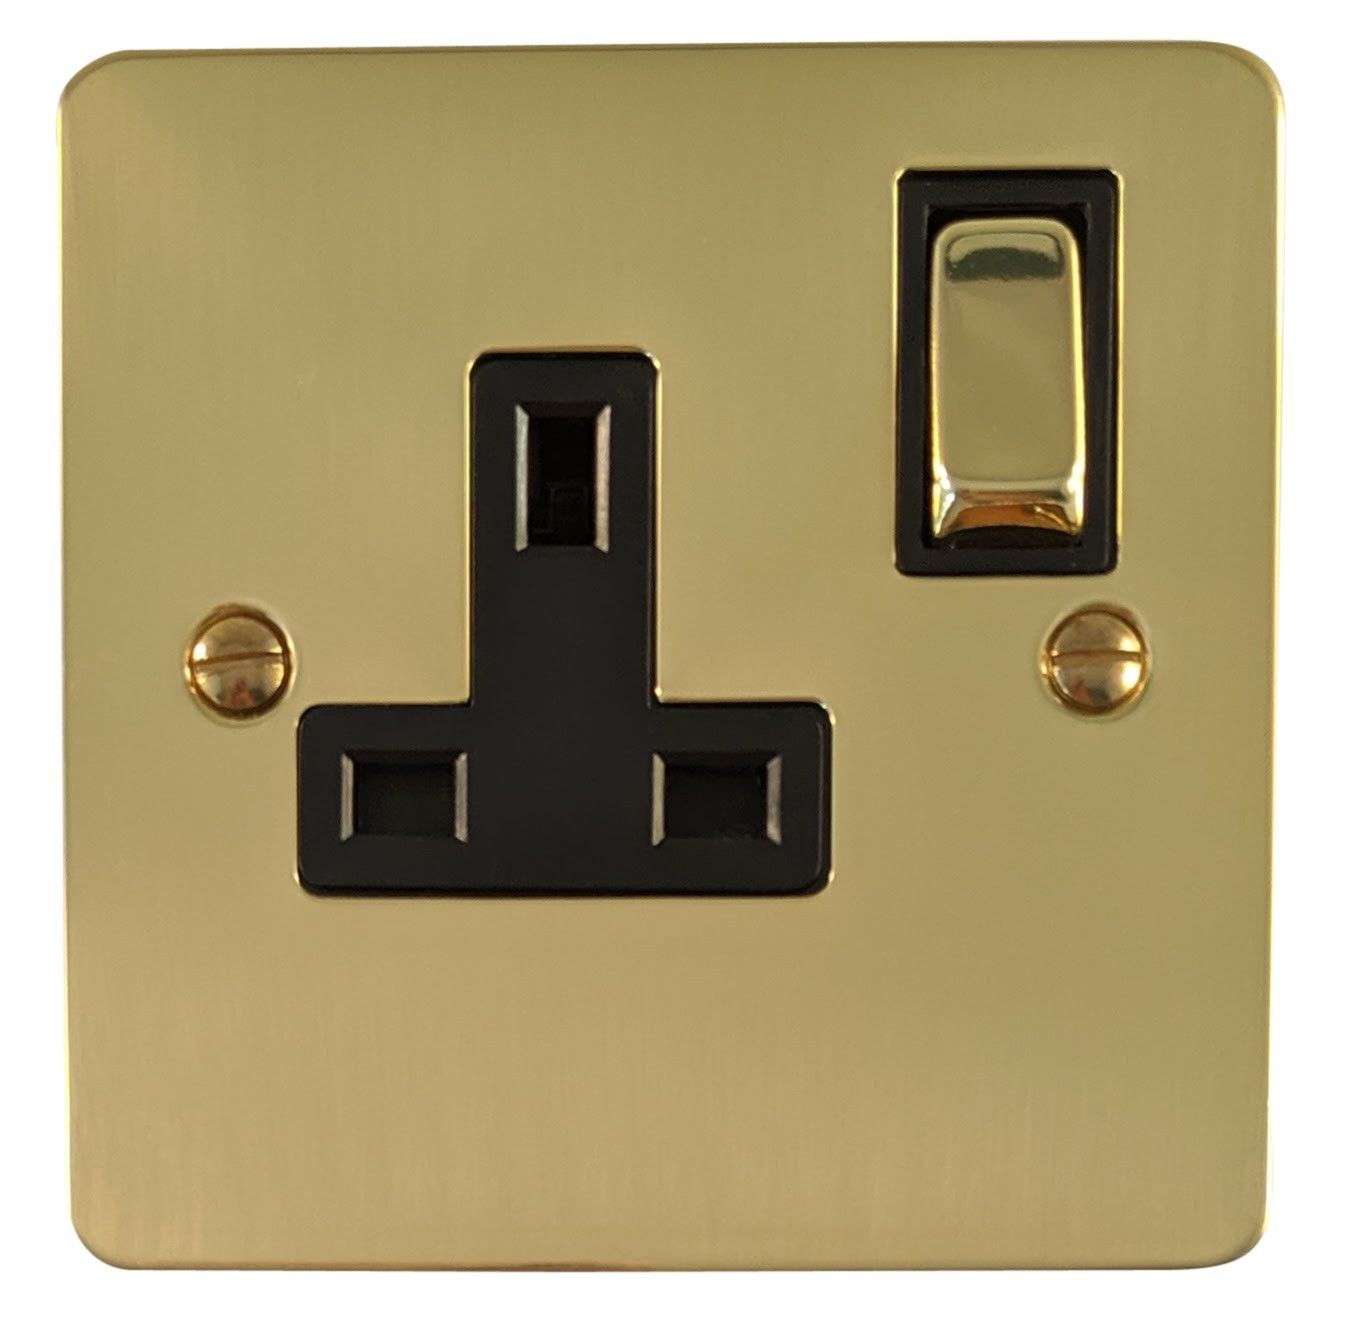 G&H FB309 Flat Plate Polished Brass 1 Gang Single 13A Switched Plug Socket